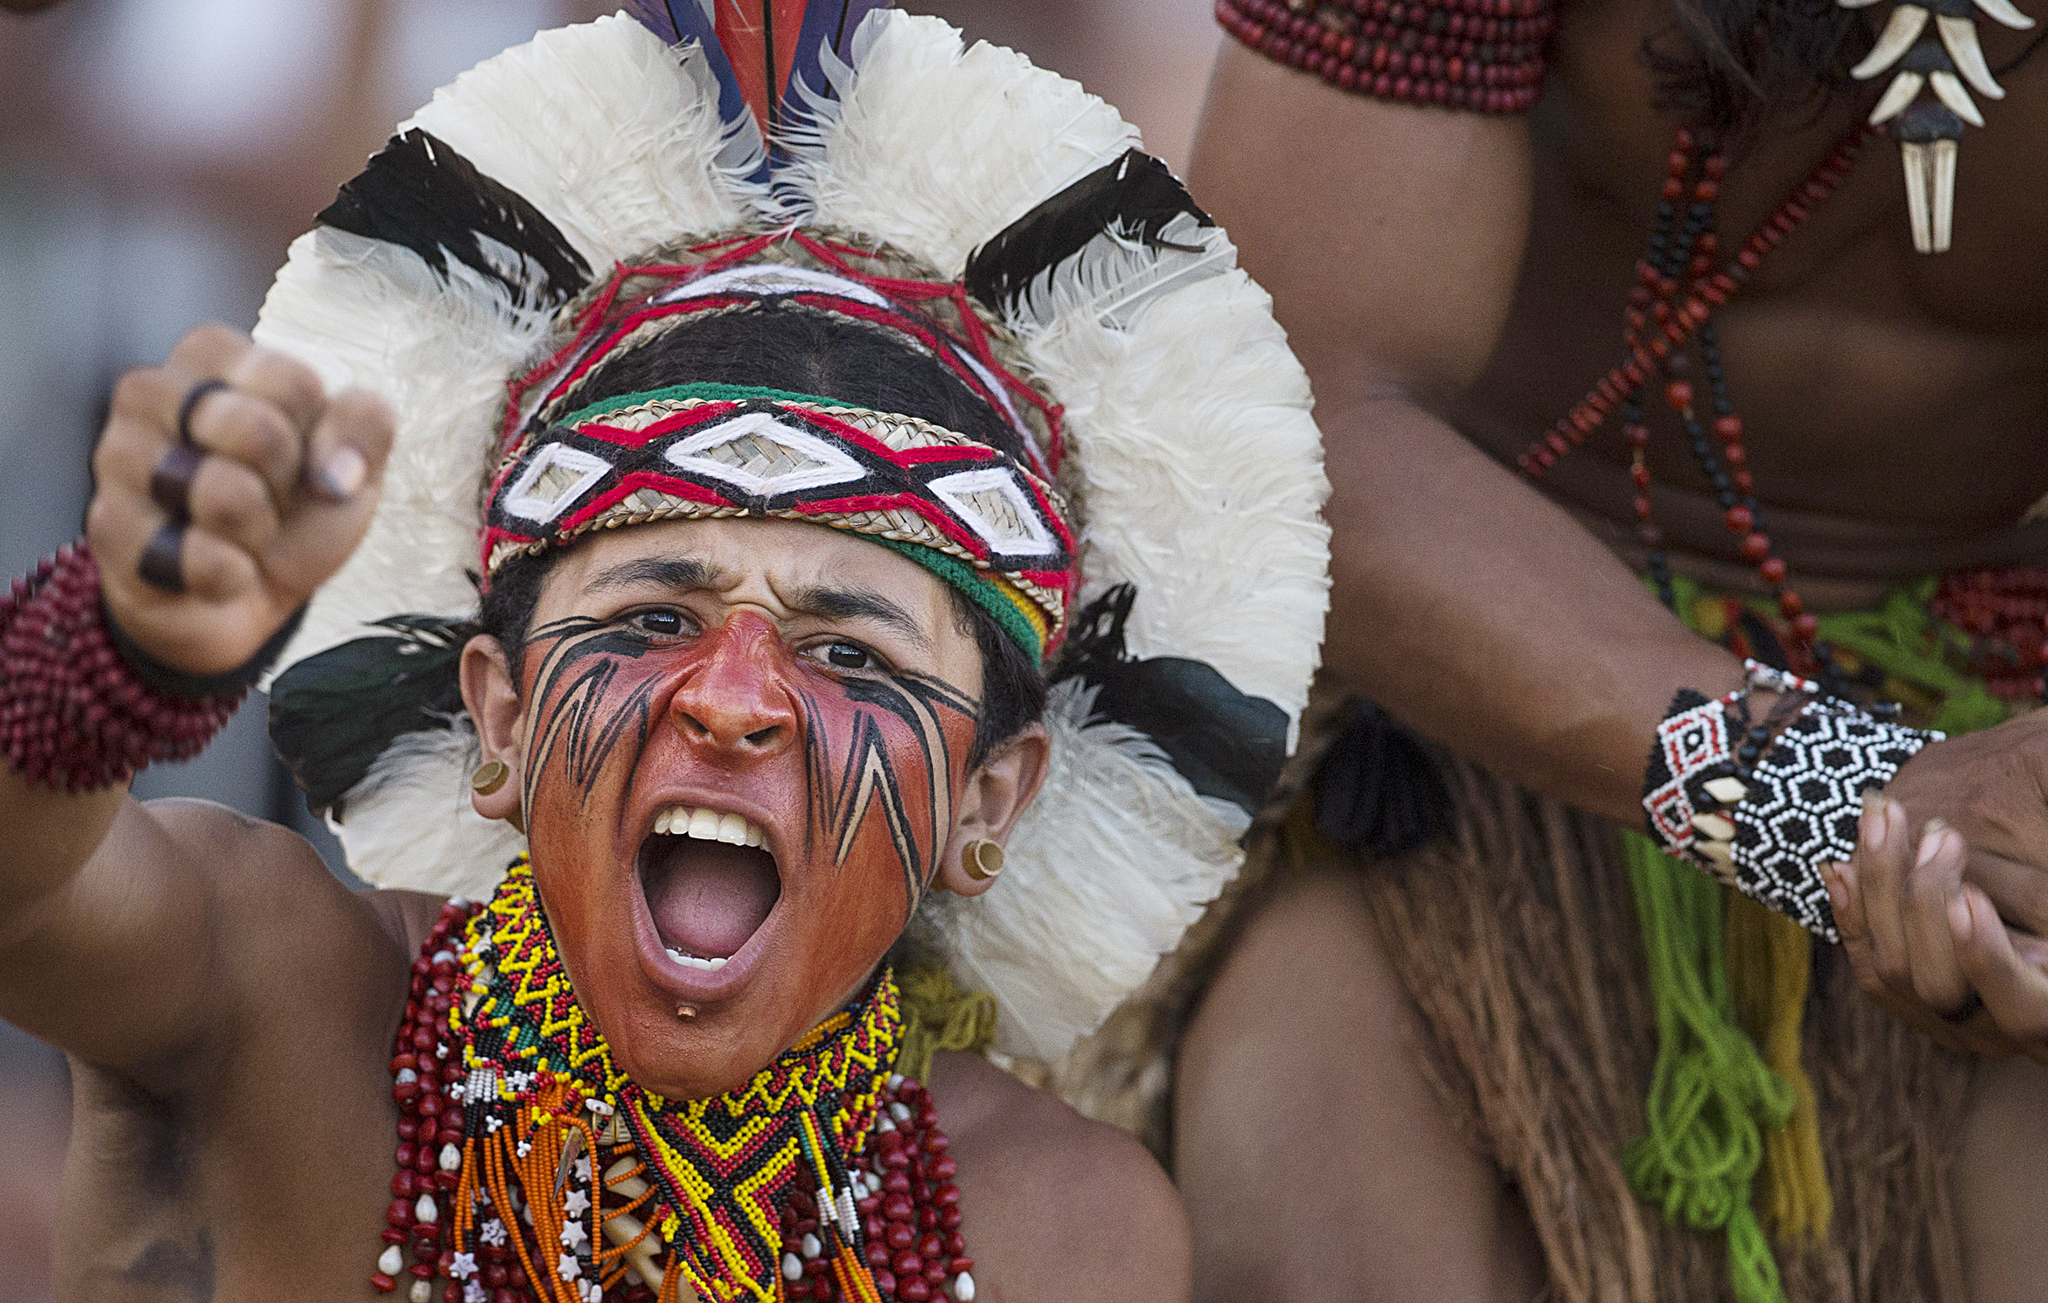 "A Pataxo Indian celebrates after his tribe defeated their competitors in a tug of war competition during the 12th Indigenous Games in Cuiaba, Brazil, Thursday, Nov. 14, 2013. More than 1,500 participants from 48 Brazilian tribes, as well as from more than a dozen other nations, descended this week on Cuiaba, the capital of Mato Grosso state, for the games that end Saturday. All participants will earn ""medals"" carved from wood, seeds and other natural items."